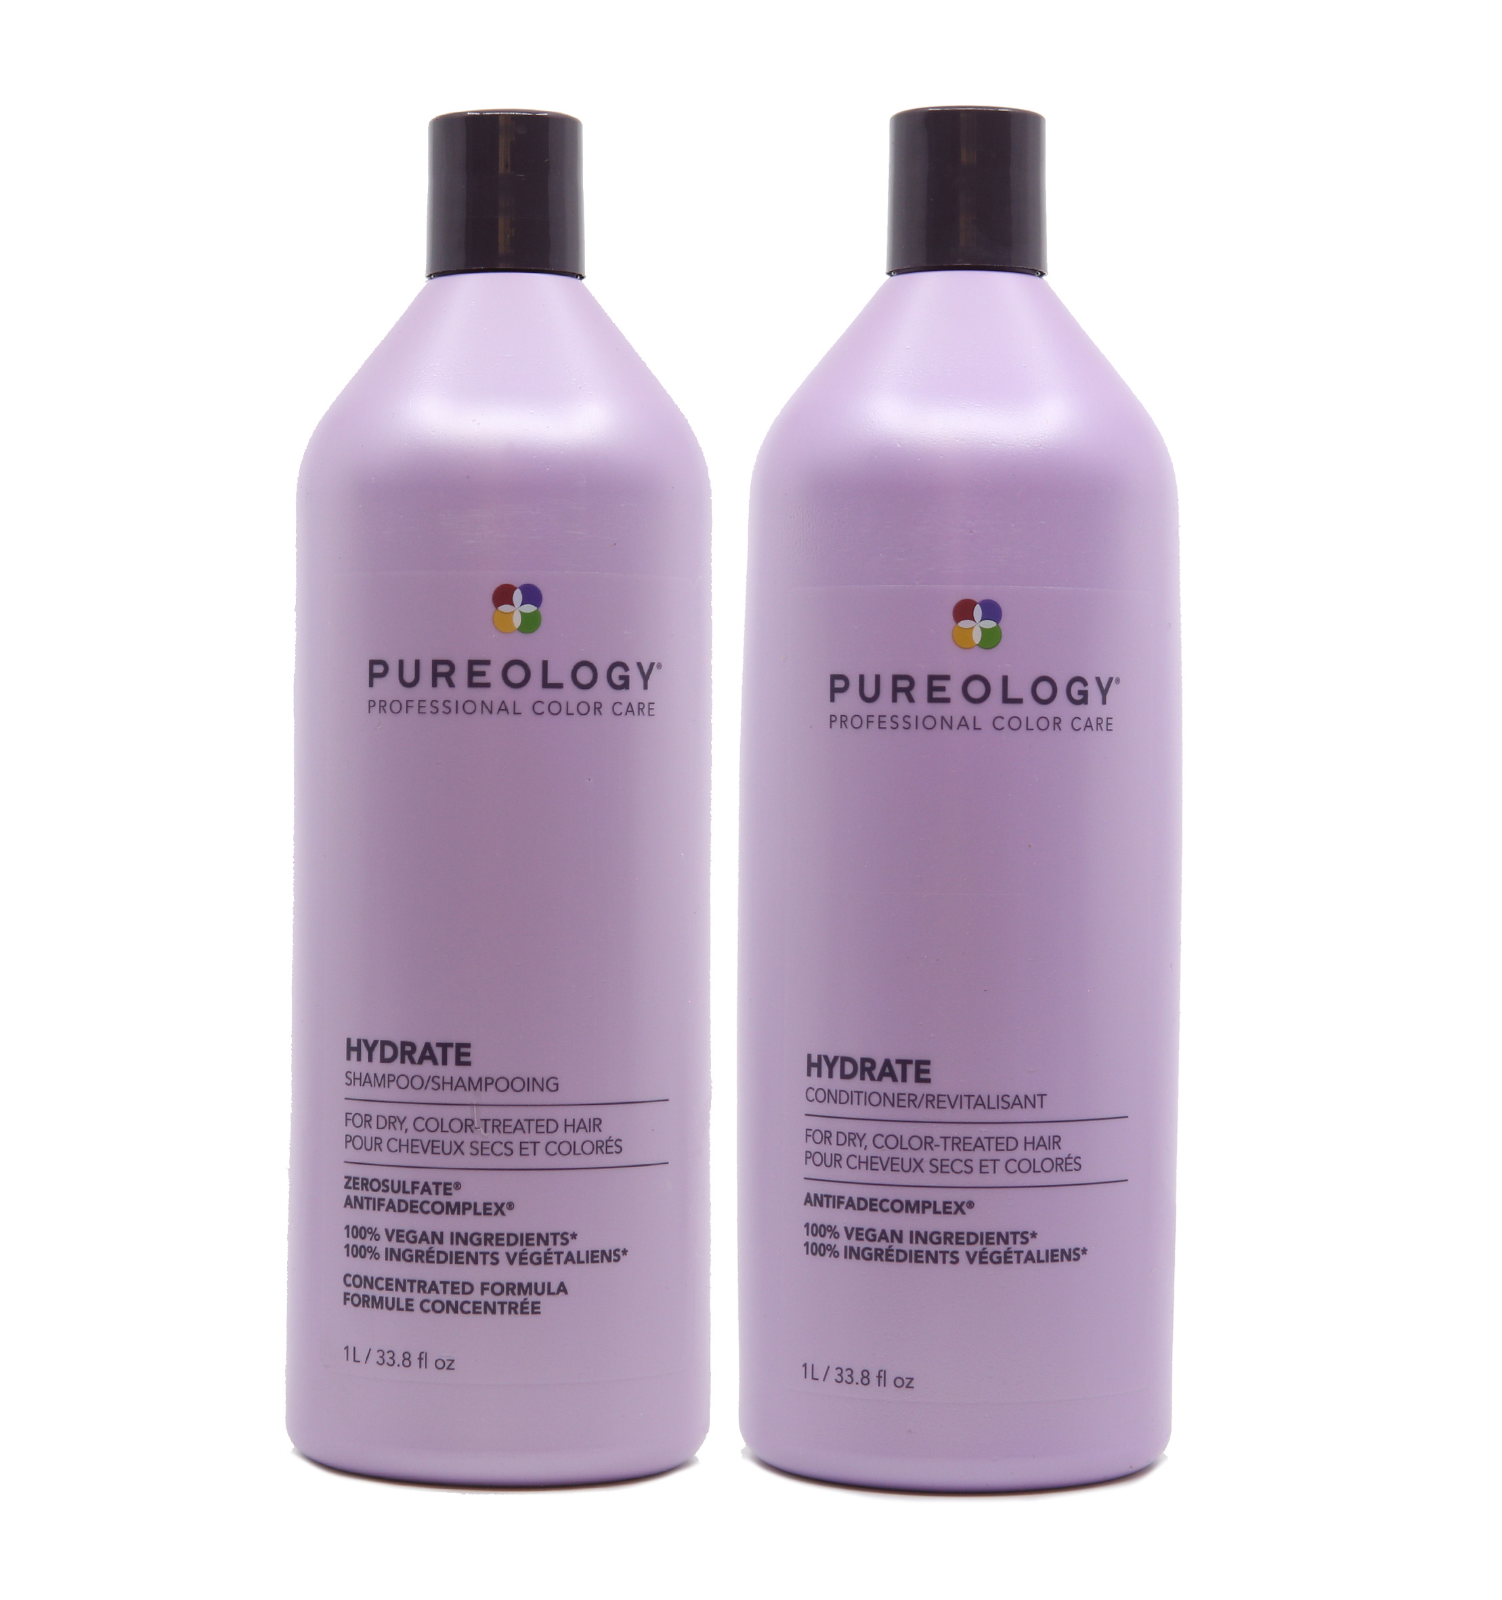 pureology hydrate shampoo and conditioner Duo 33.8oz - New p